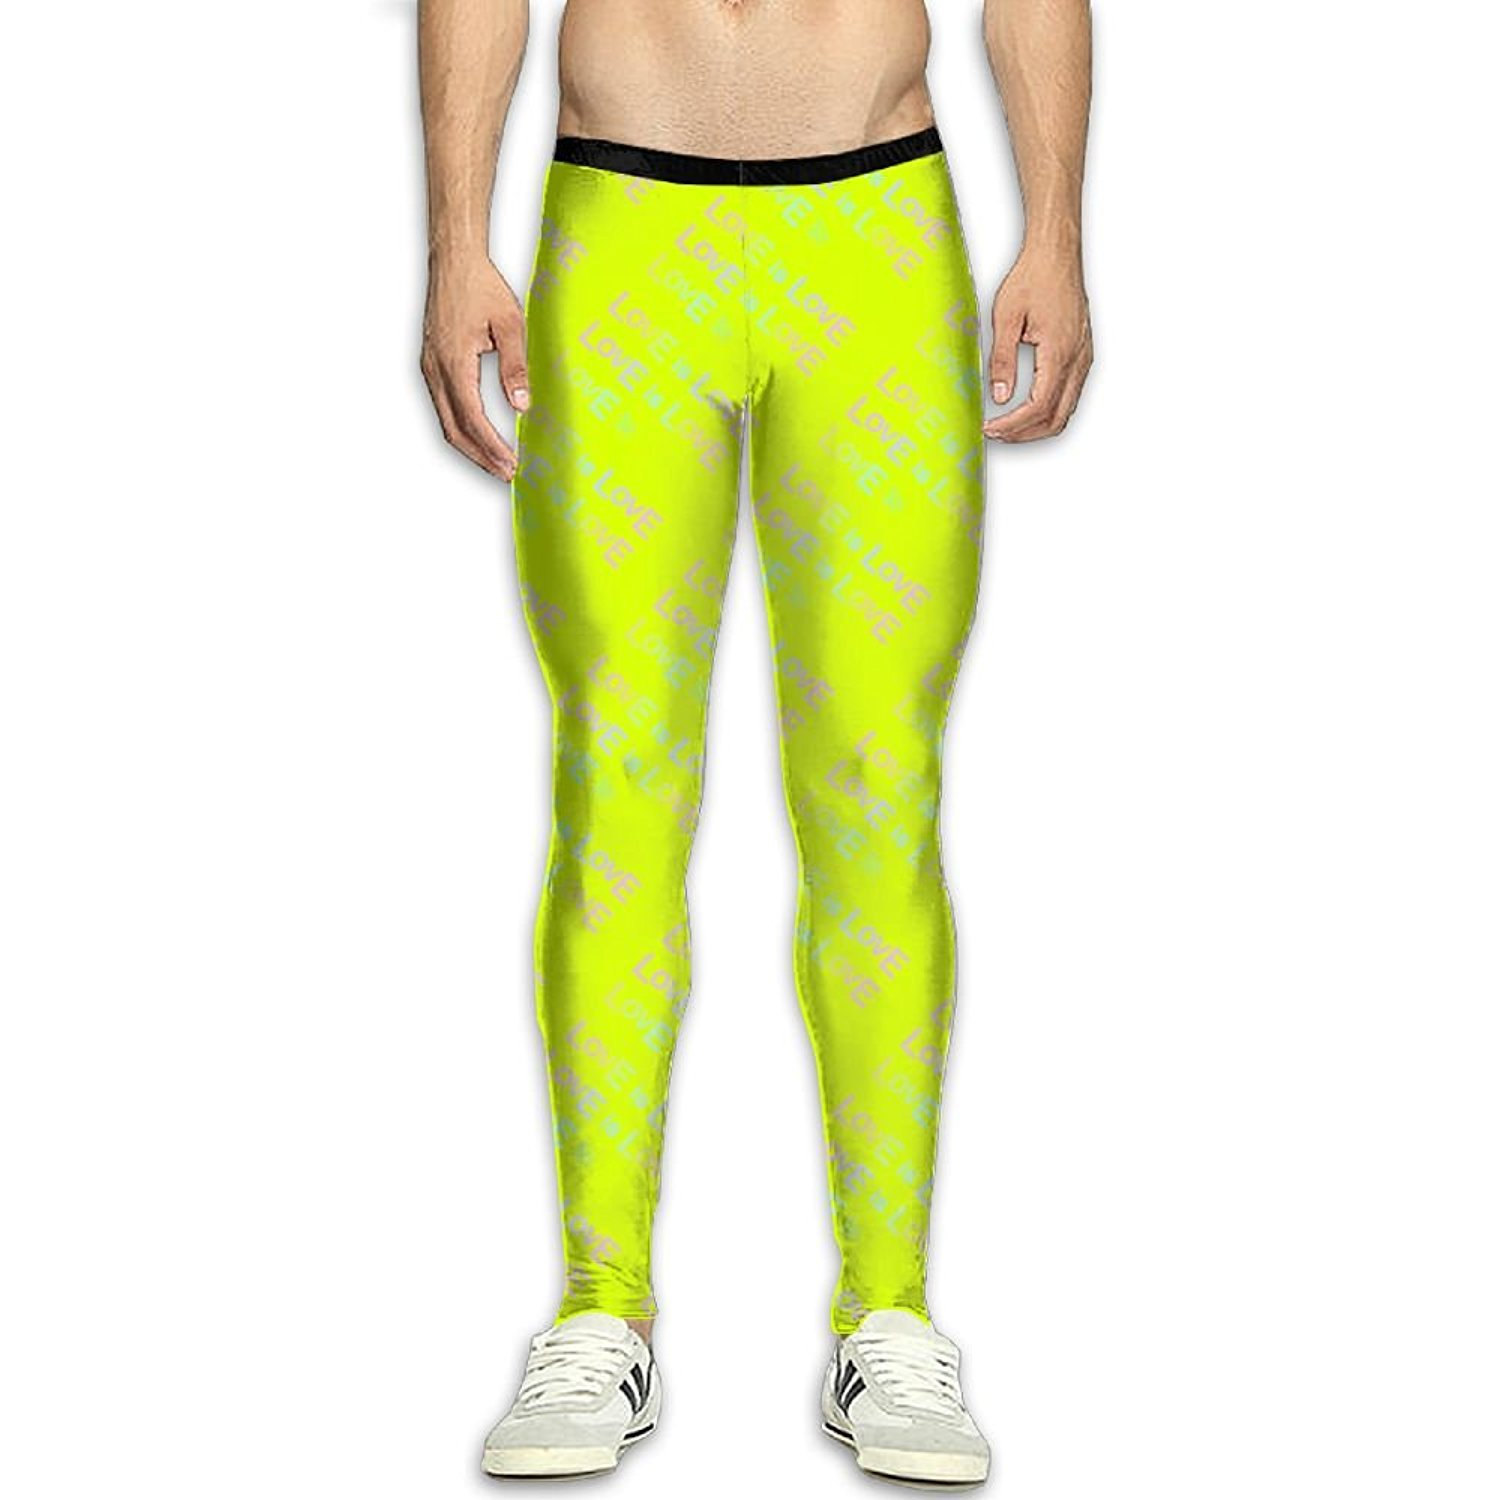 13e72a13abdcf Get Quotations · Virgo Love Is Love Stretchy Compression Pants/Running  Tights Gym Tights For Men Youth Drawstring